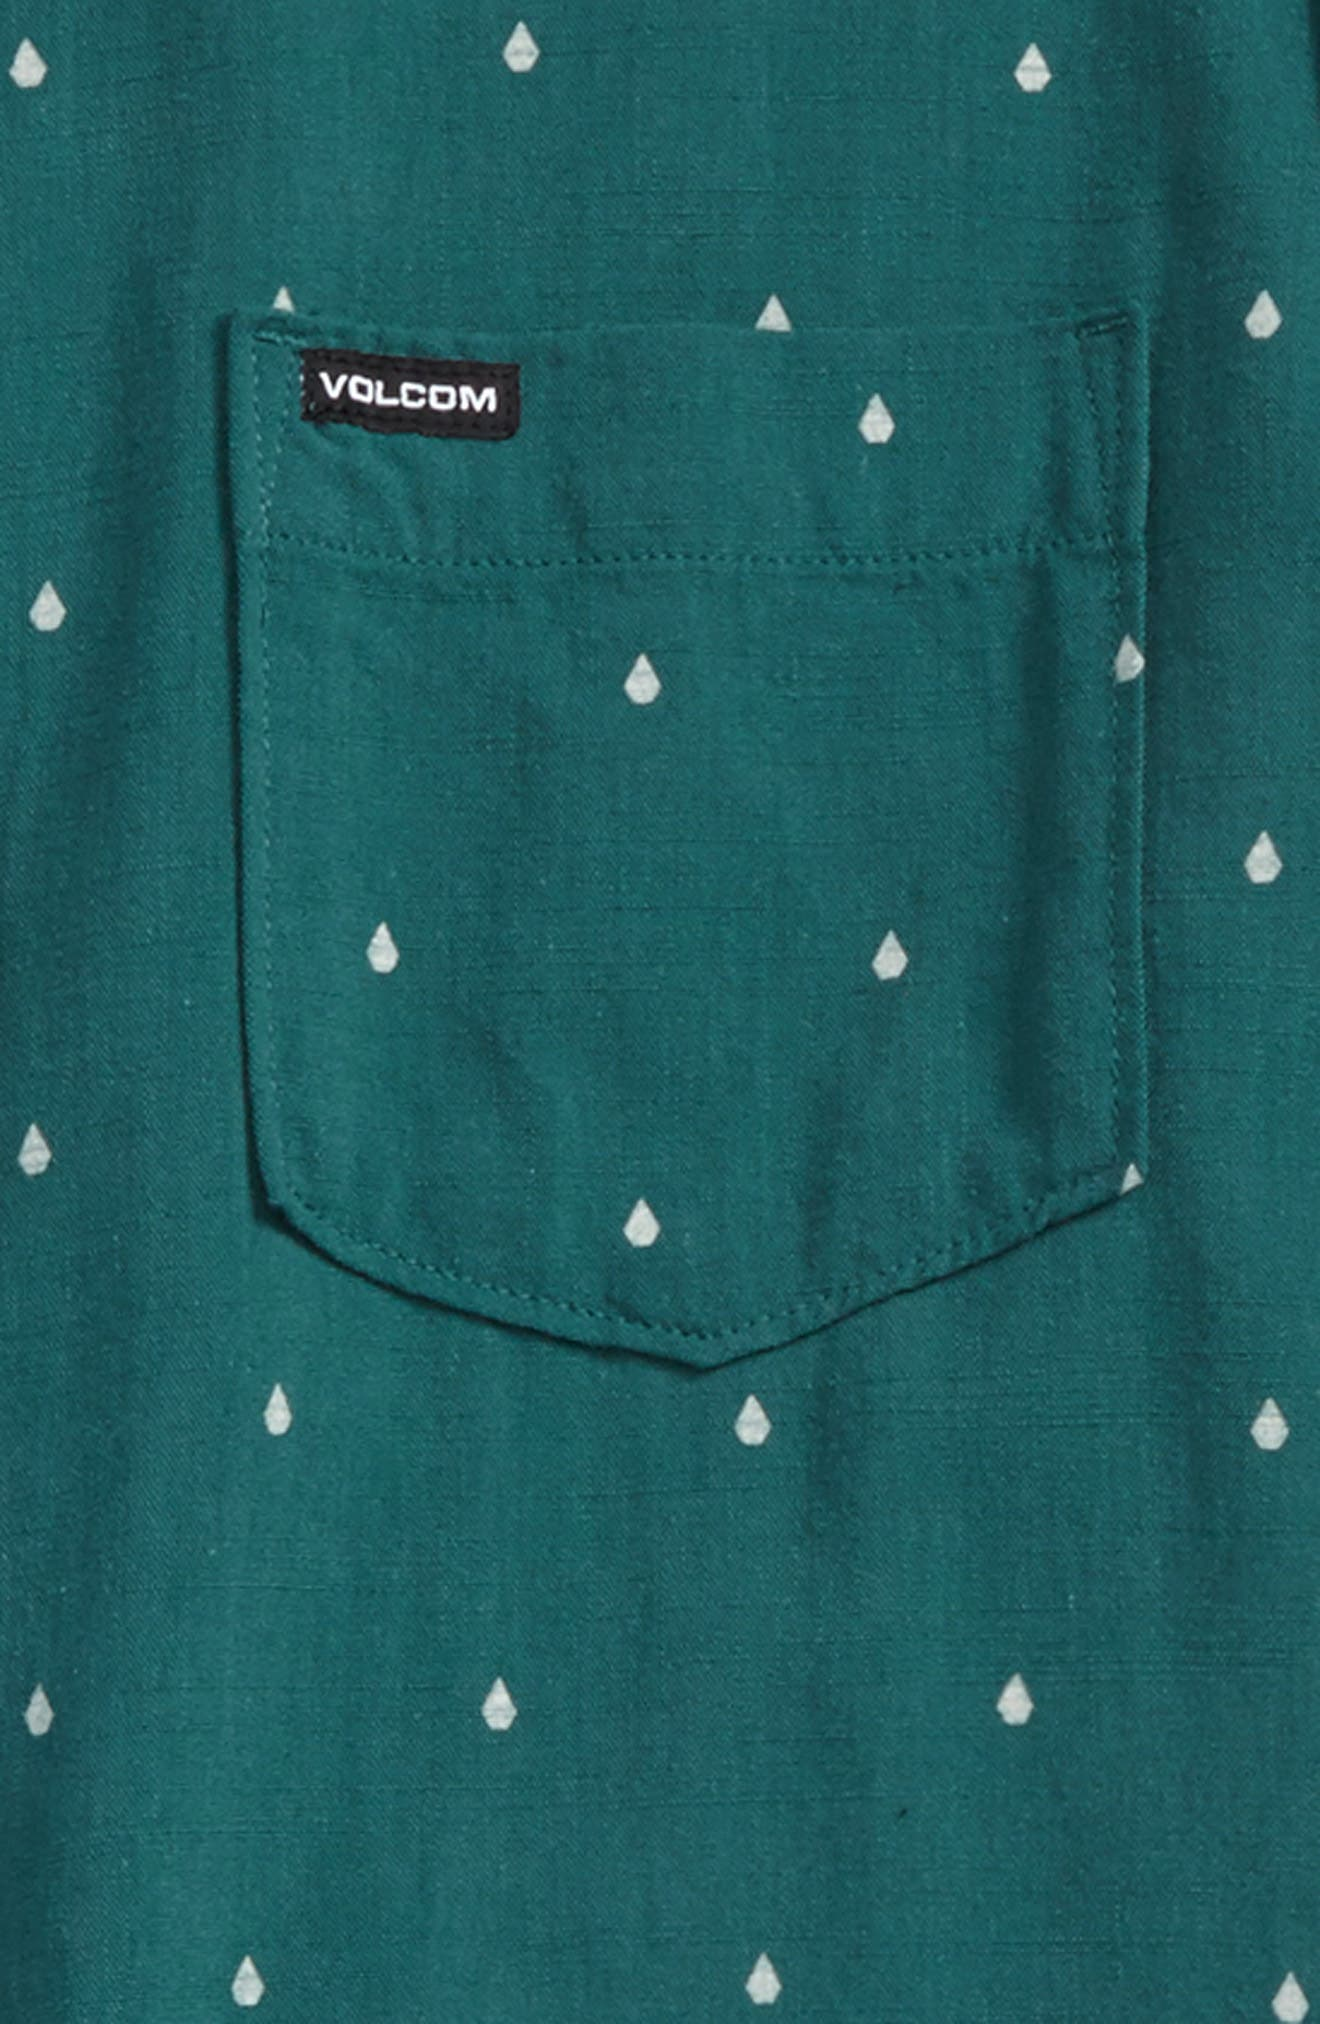 Stone Logo Jacquard Shirt,                             Alternate thumbnail 2, color,                             Green